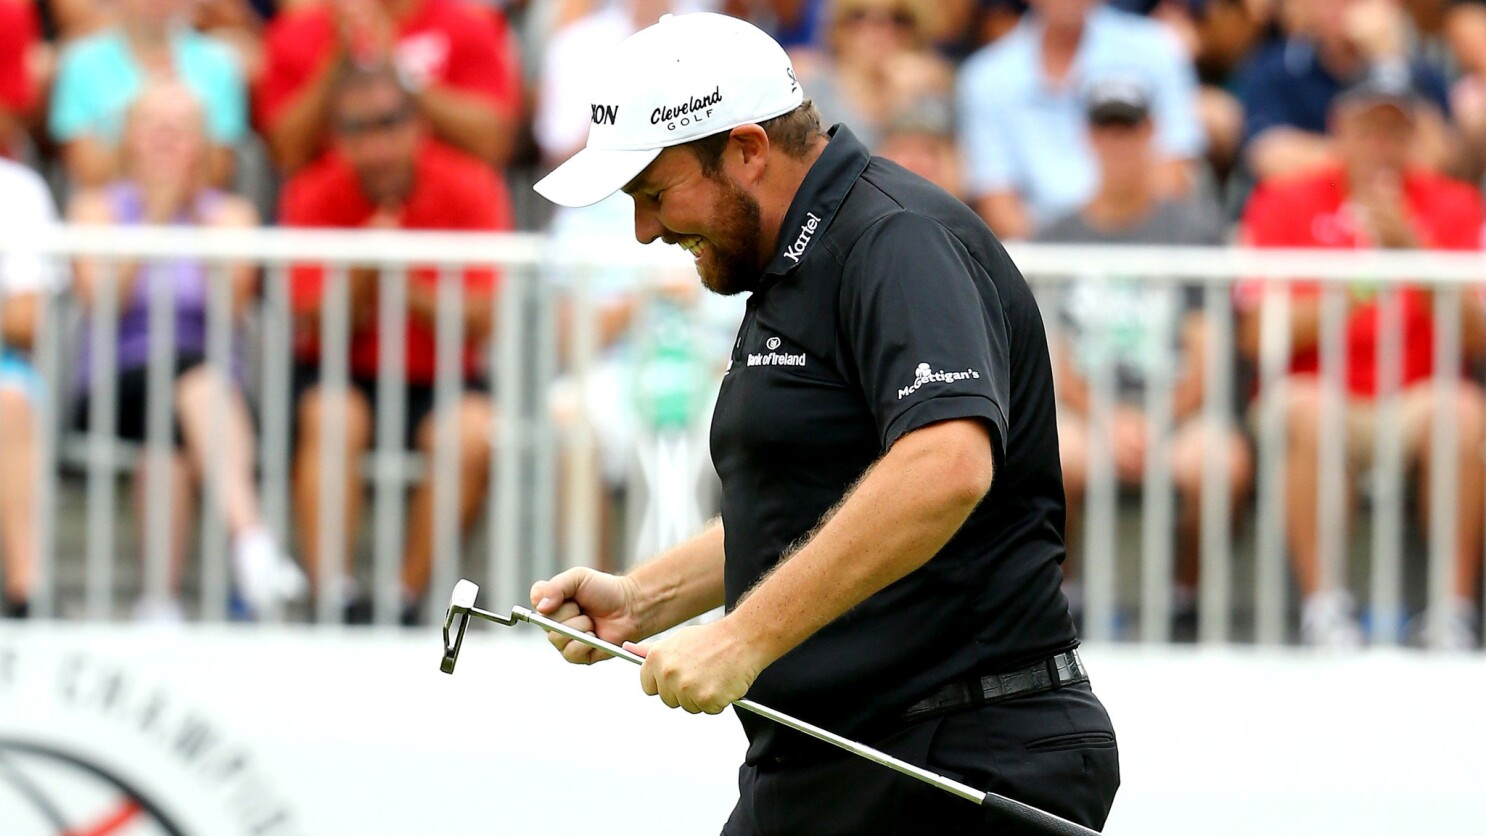 The Sports Report: Shane Lowry wins the British Open